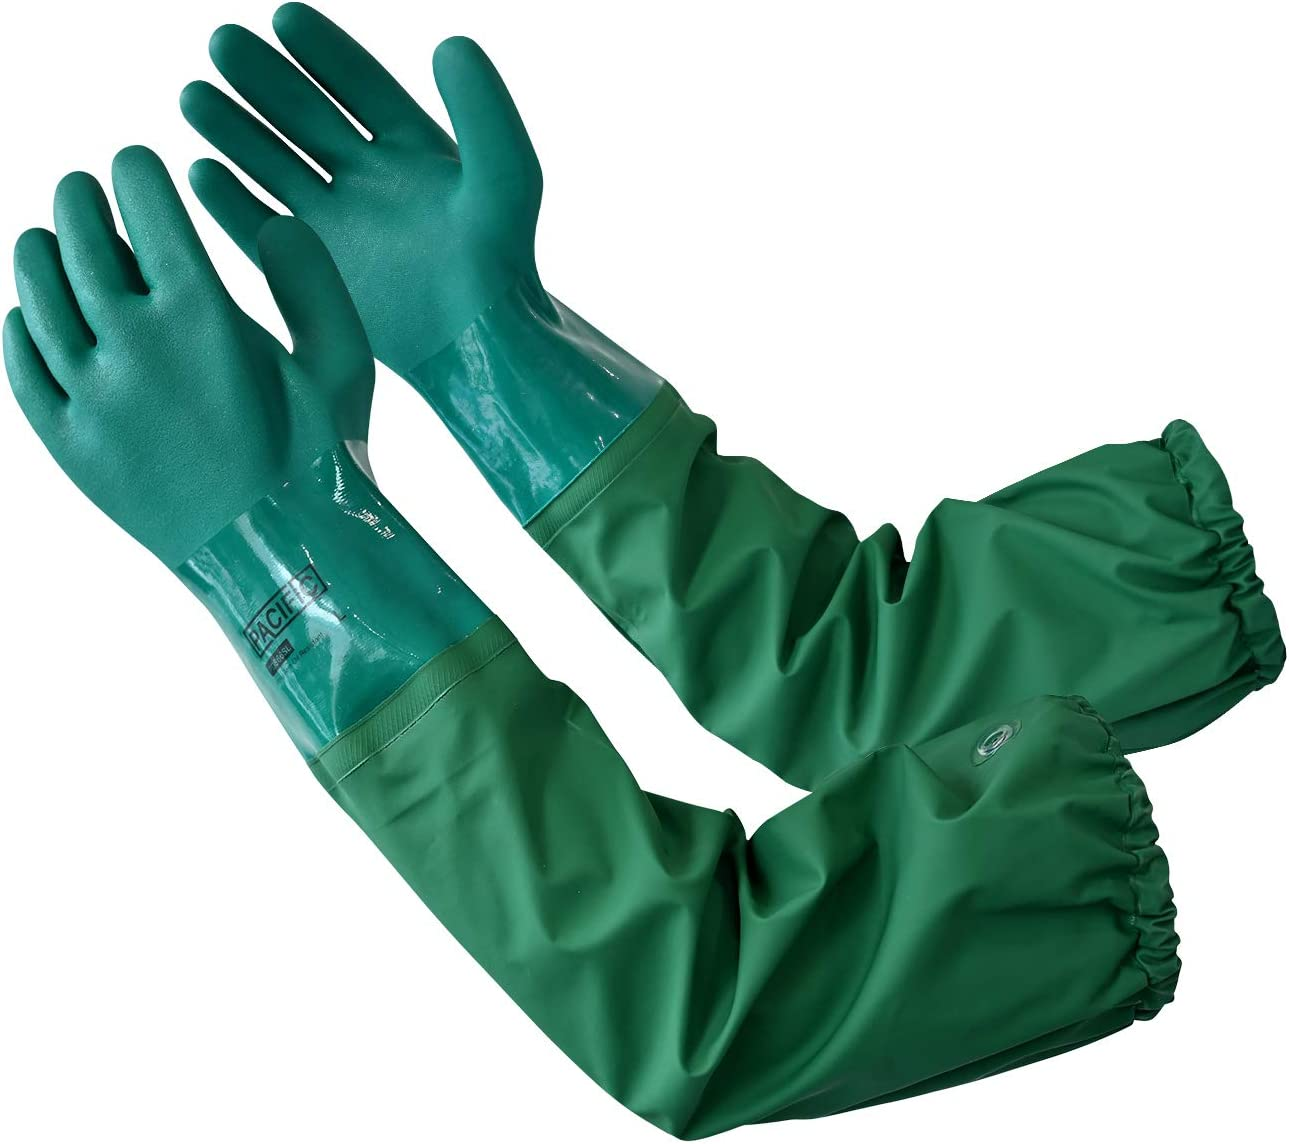 PACIFIC PPE PVC Chemical Resistant Gloves, Safety Work, Reusable, Heavy Duty, Cotton Liner, Acid, Alkali and Oil Protection,Long Sleeve, Elbow Length,26